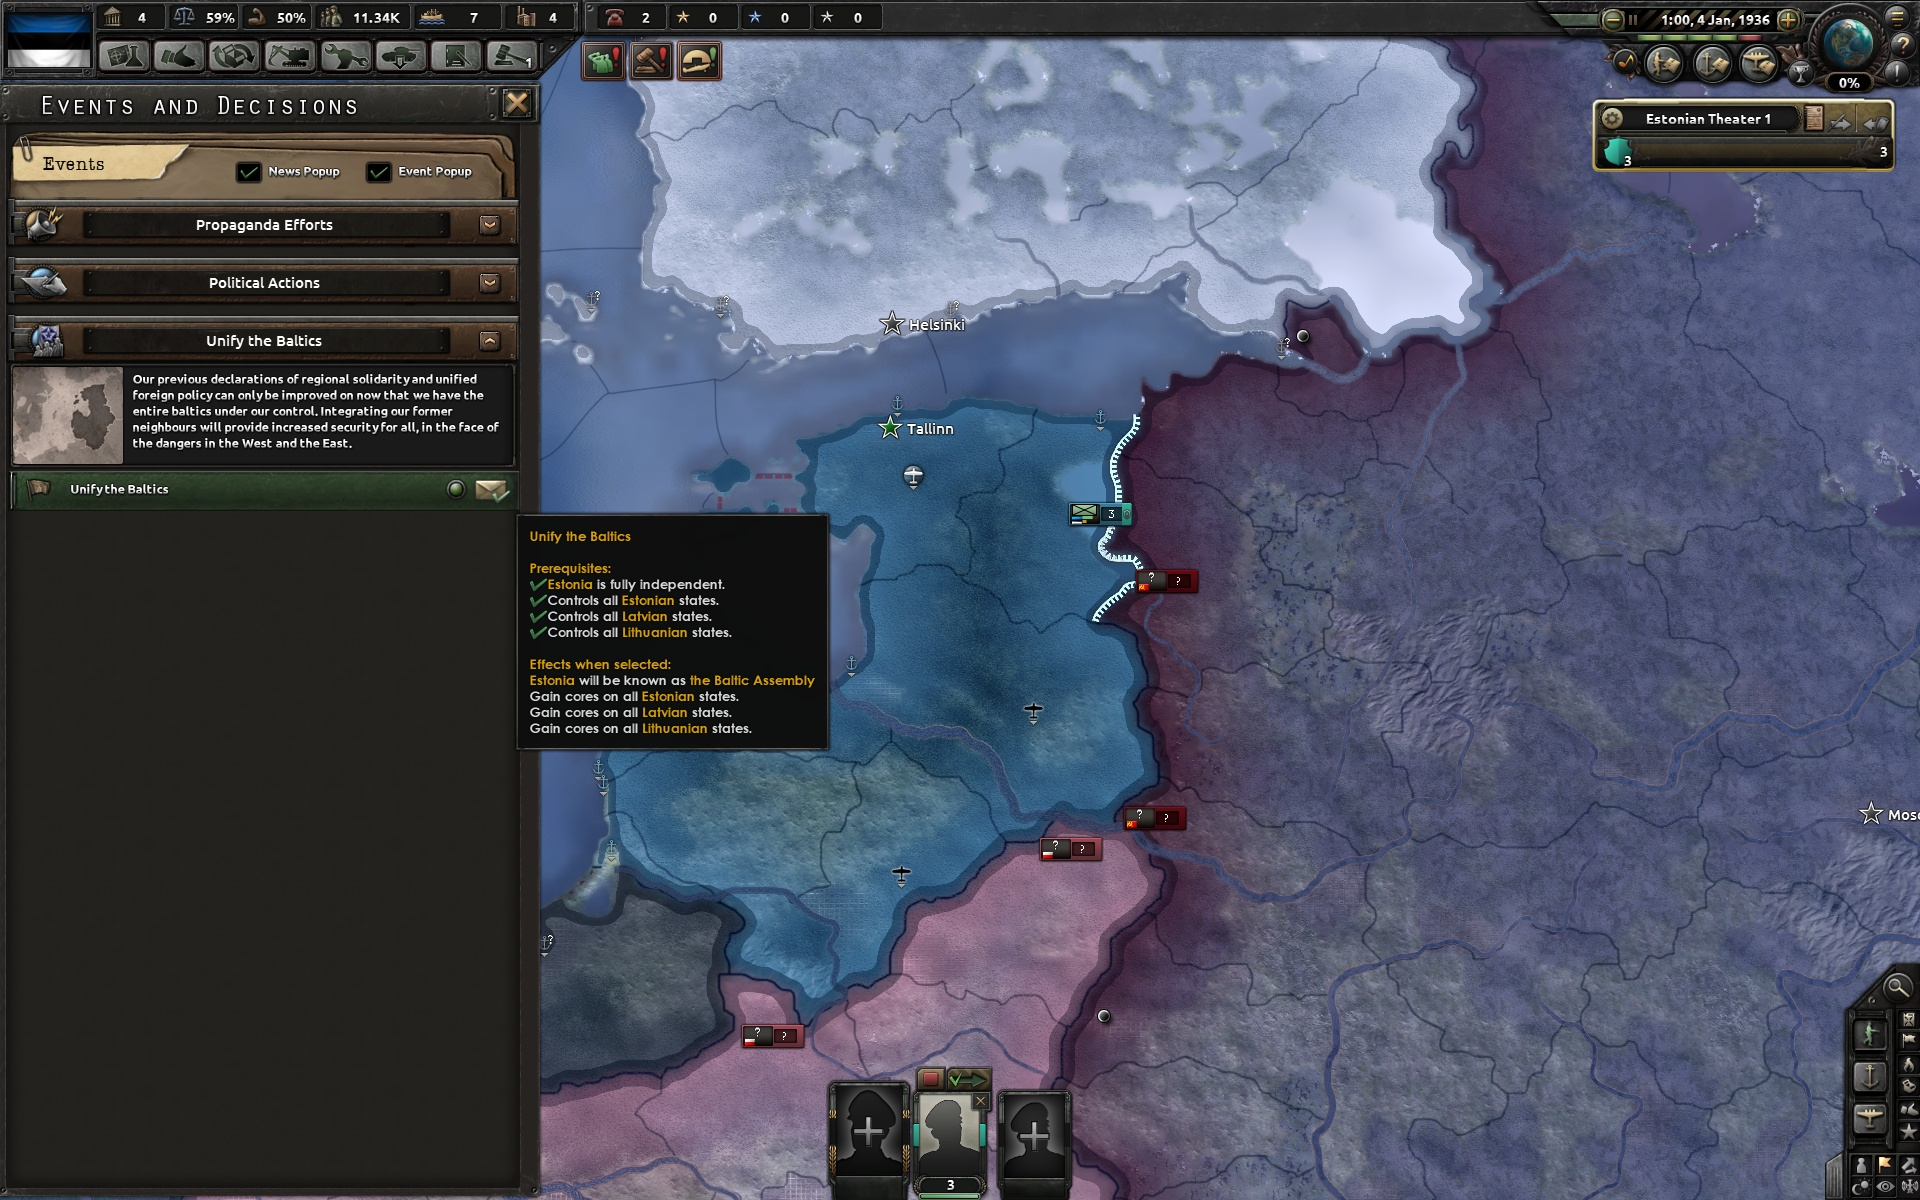 HoI 4 Dev Diary - Formable Nations and Achievements | Paradox